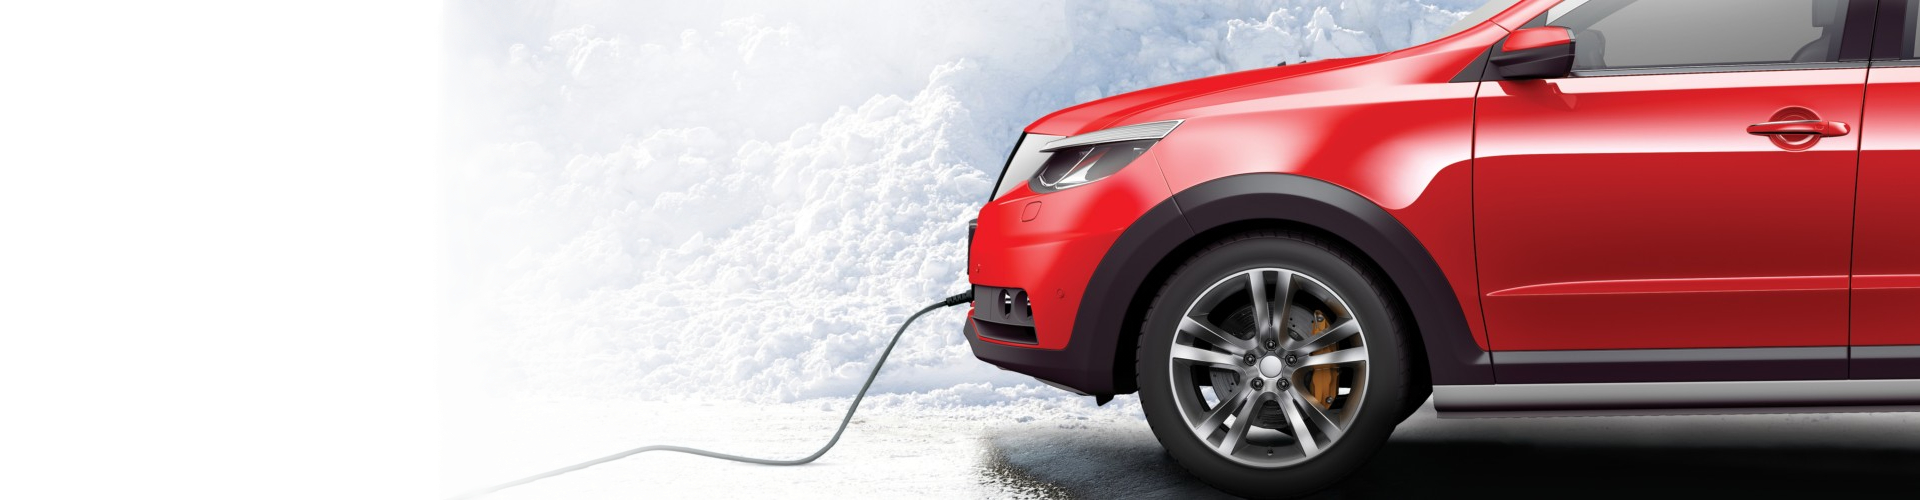 Red car in snowy landskape with green DEFA cable connected